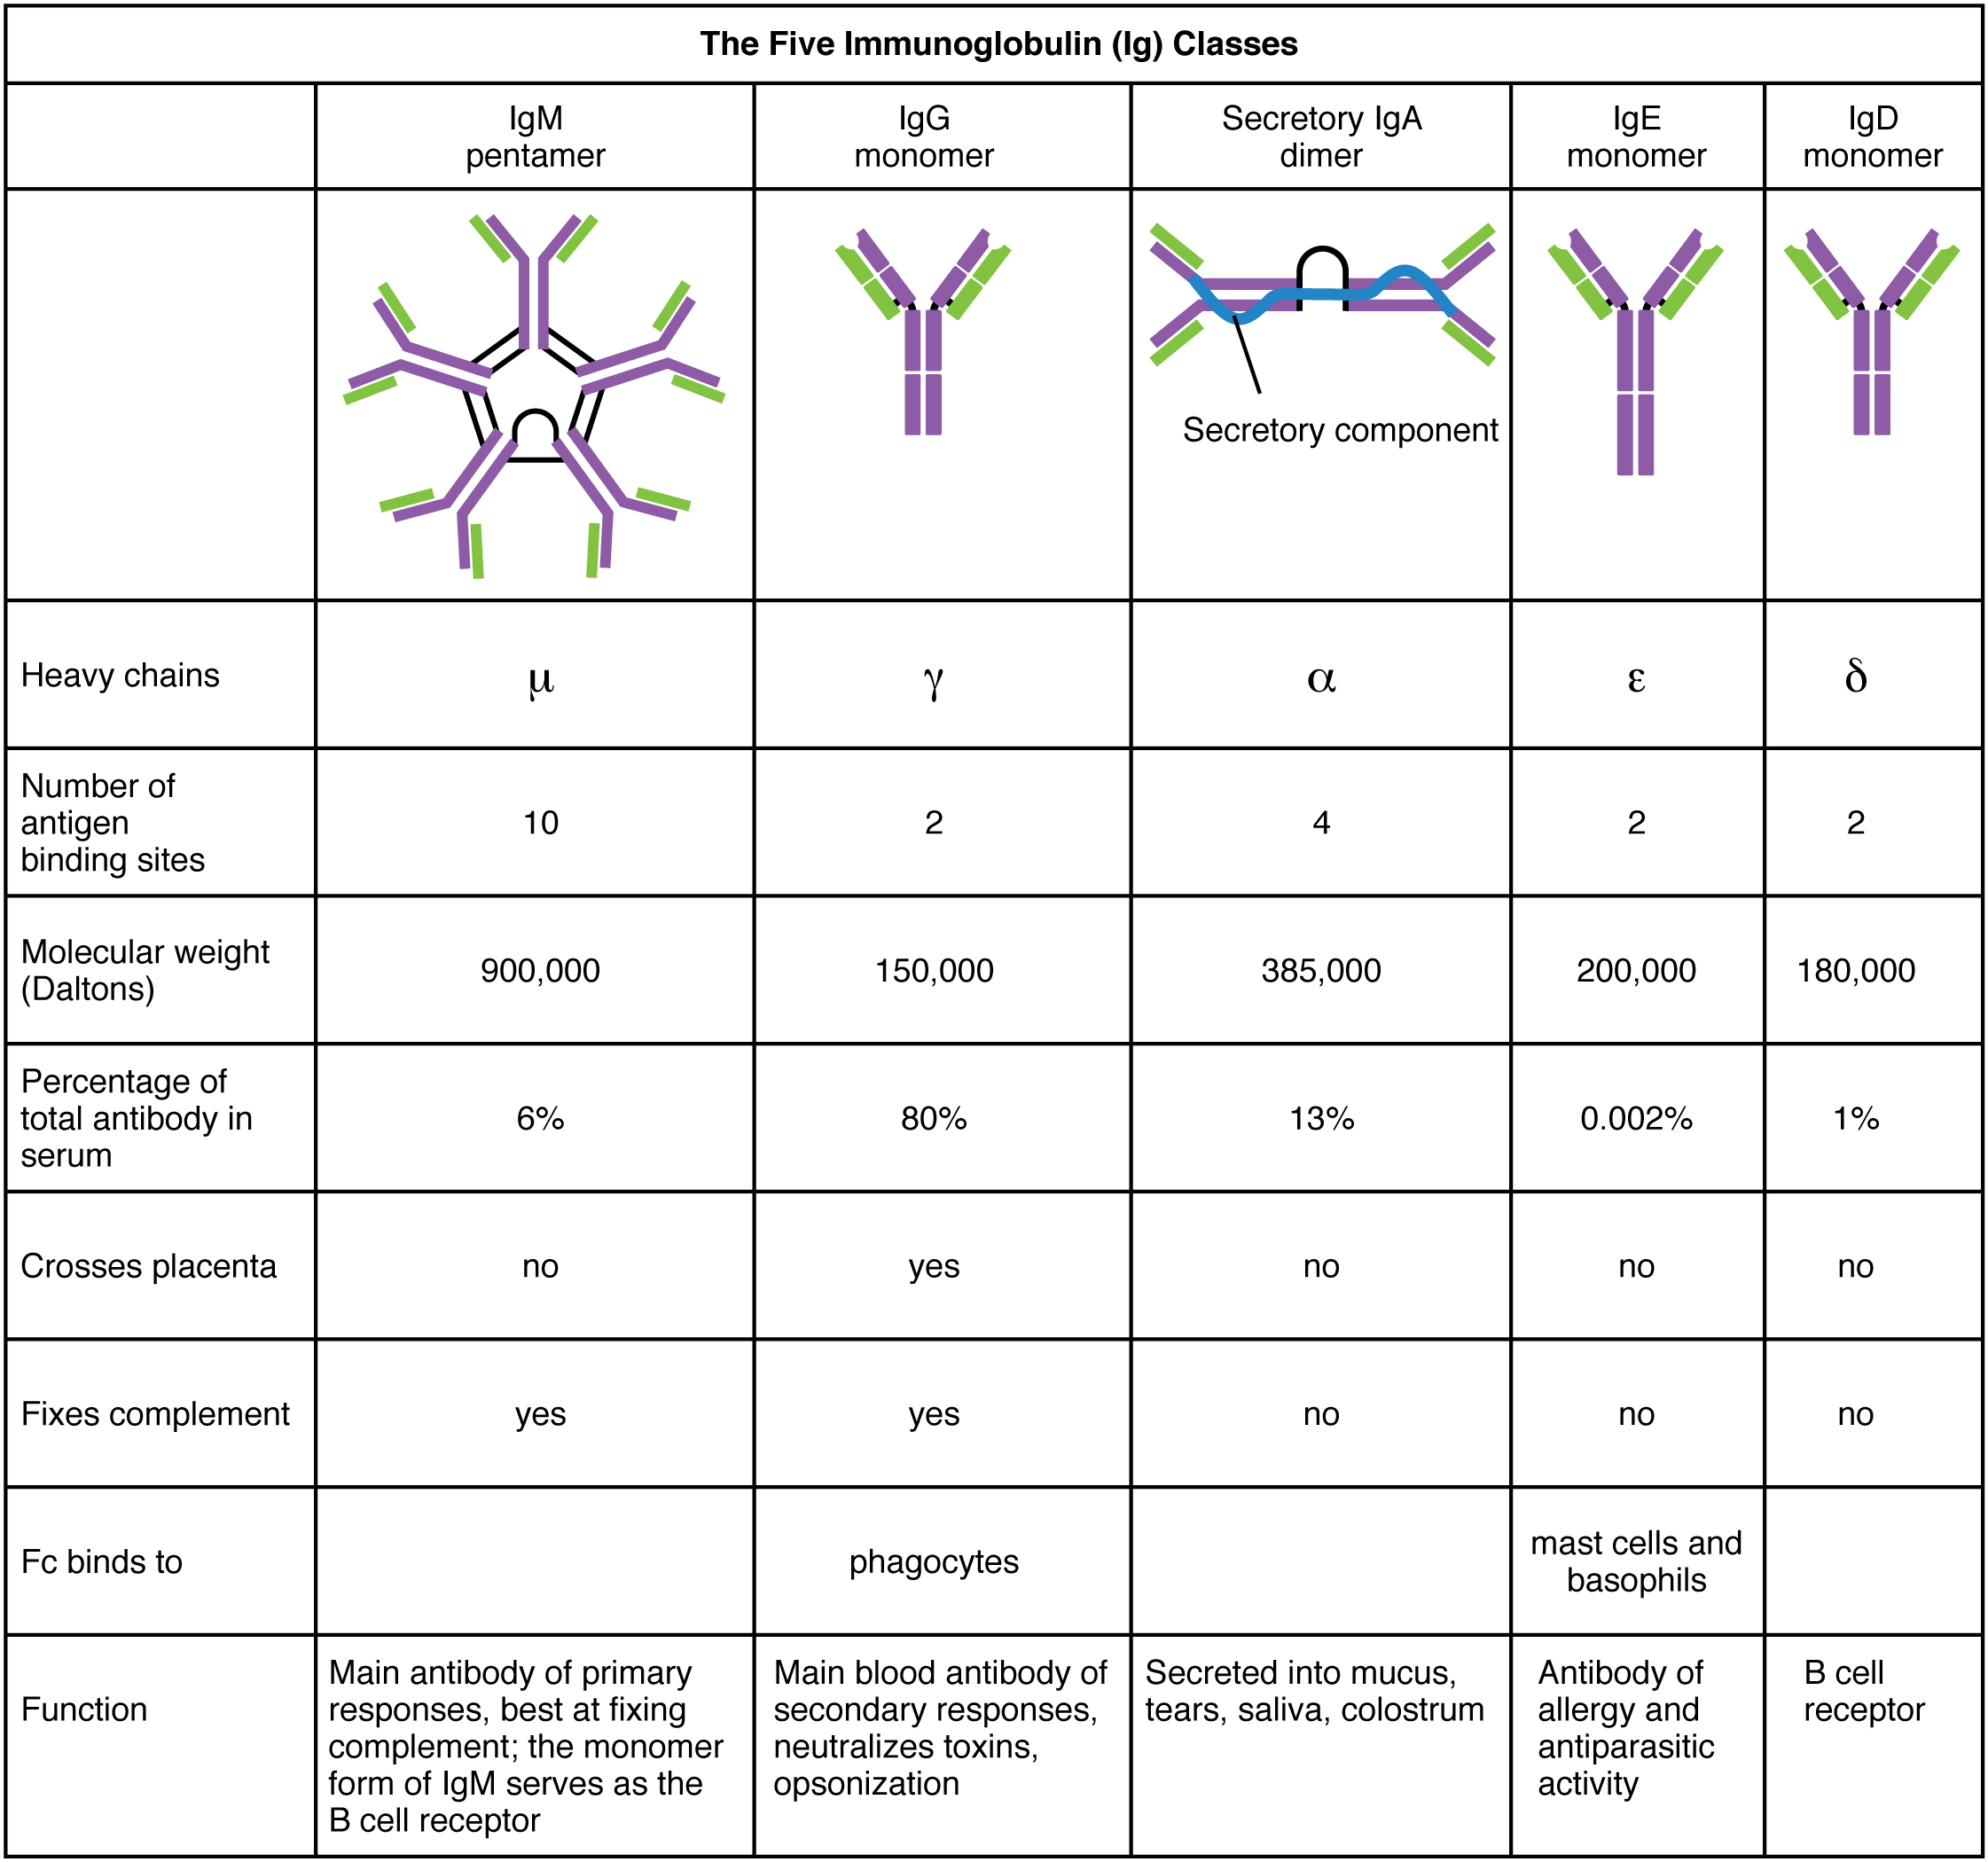 This table shows the five classes of the immunoglobulins. The table shows the molecular weight, number of antigen binding sites, and their function.